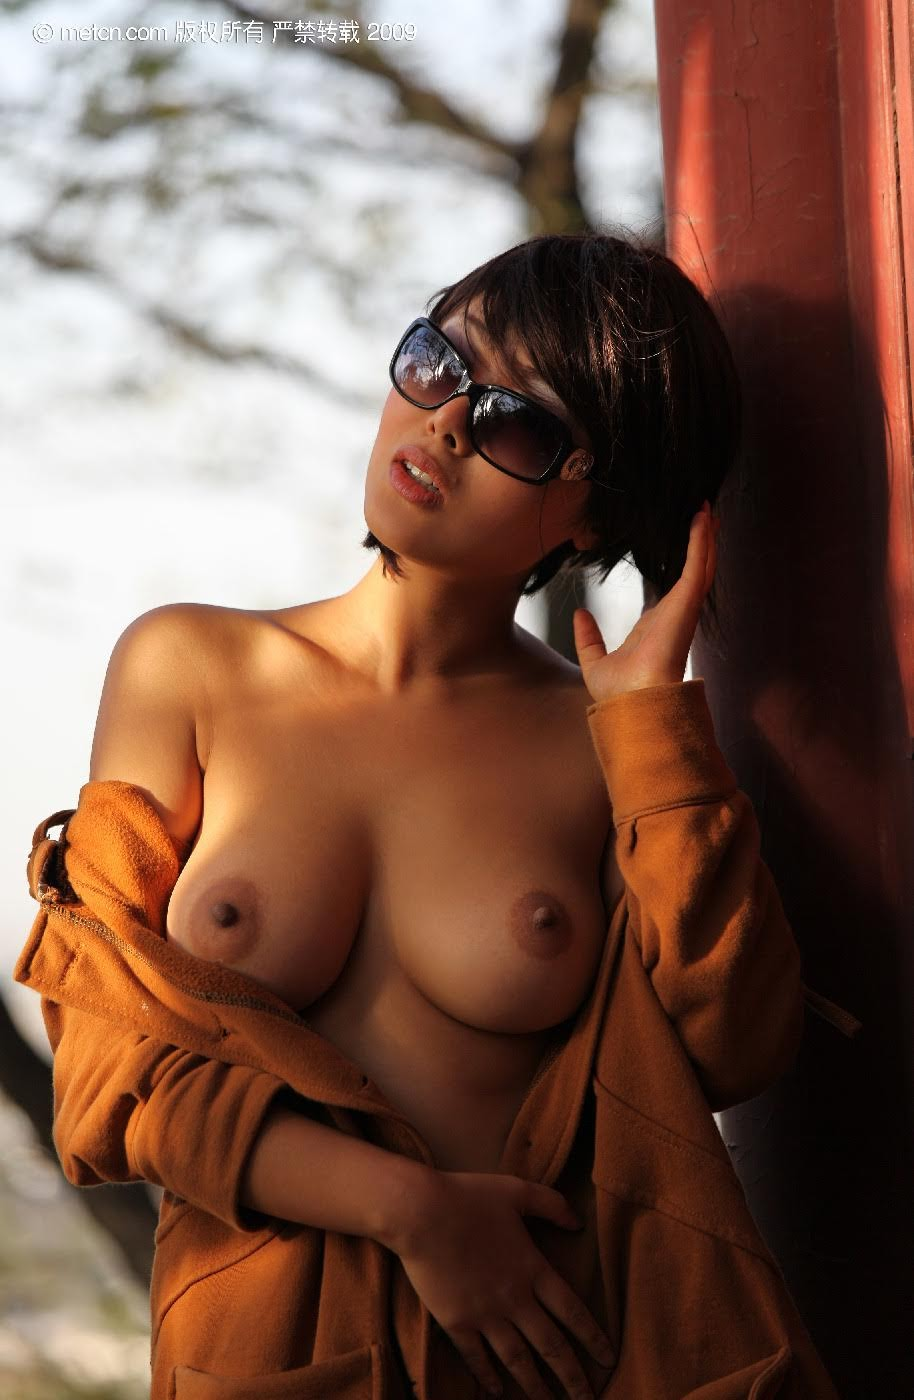 MetCN Naked_Girls-082-2009-11-30-Ao-Lei re metcn1 metcn 04160